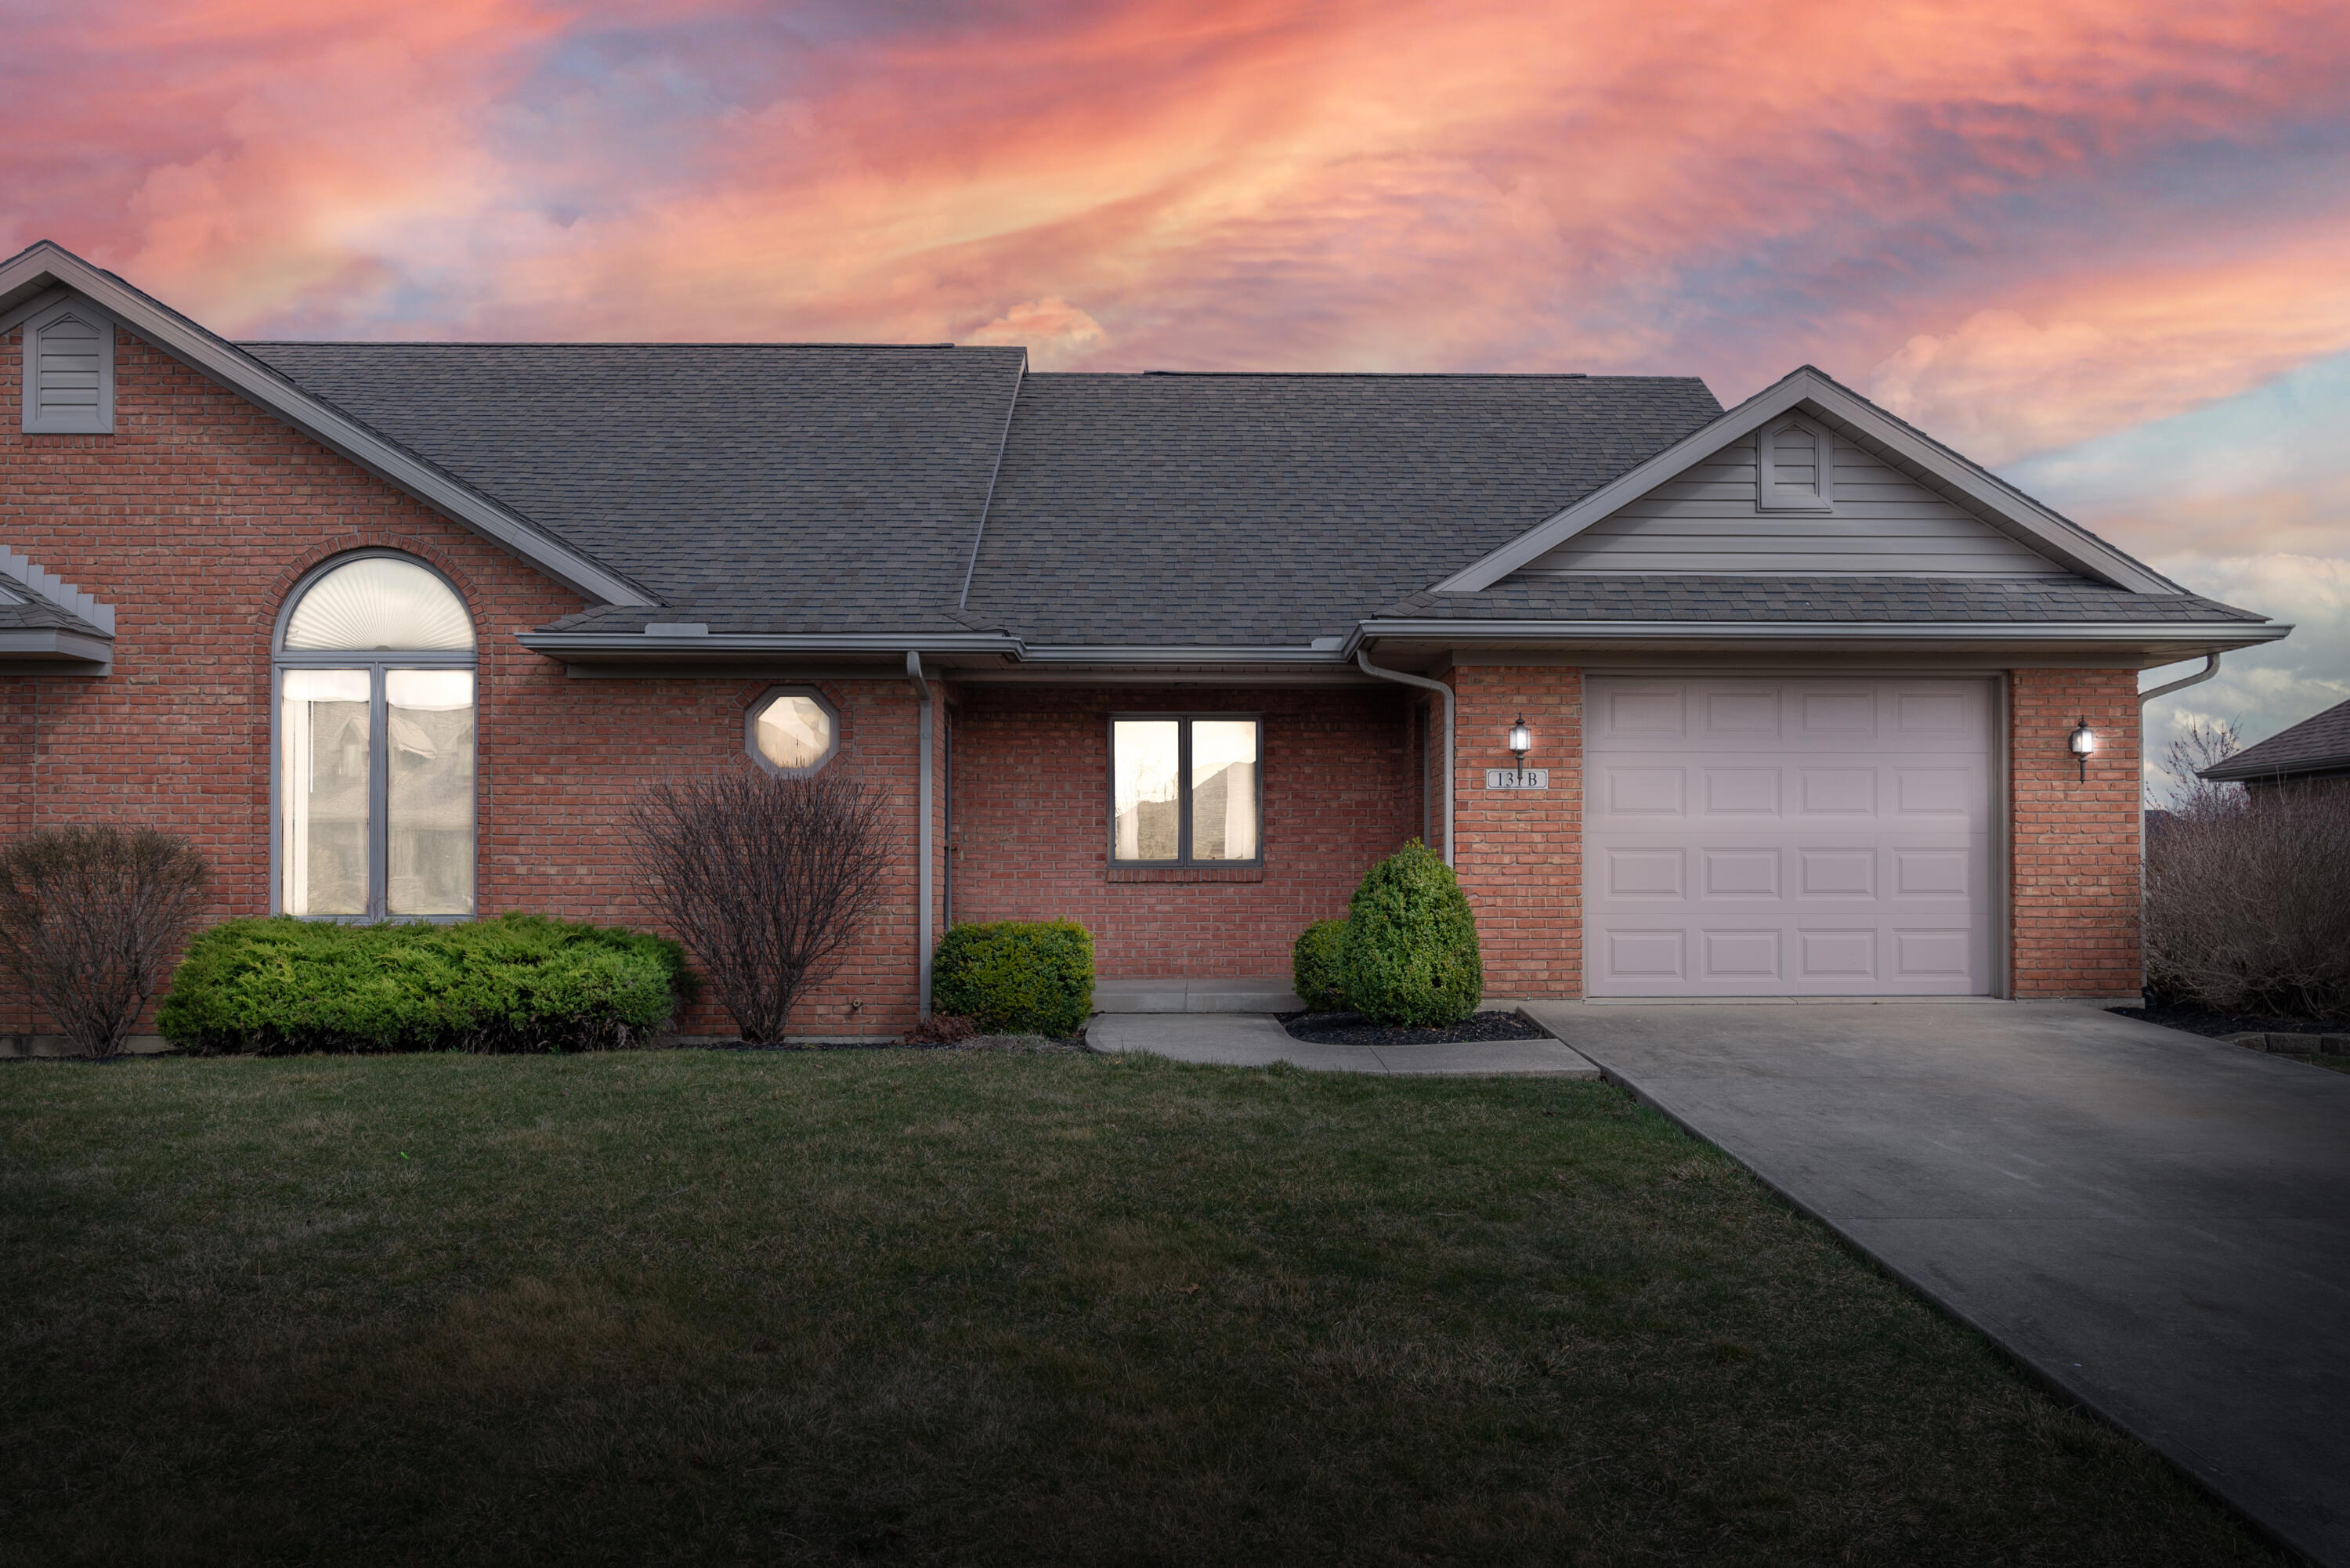 131 Liberty Way Property Photo - Fort Loramie, OH real estate listing